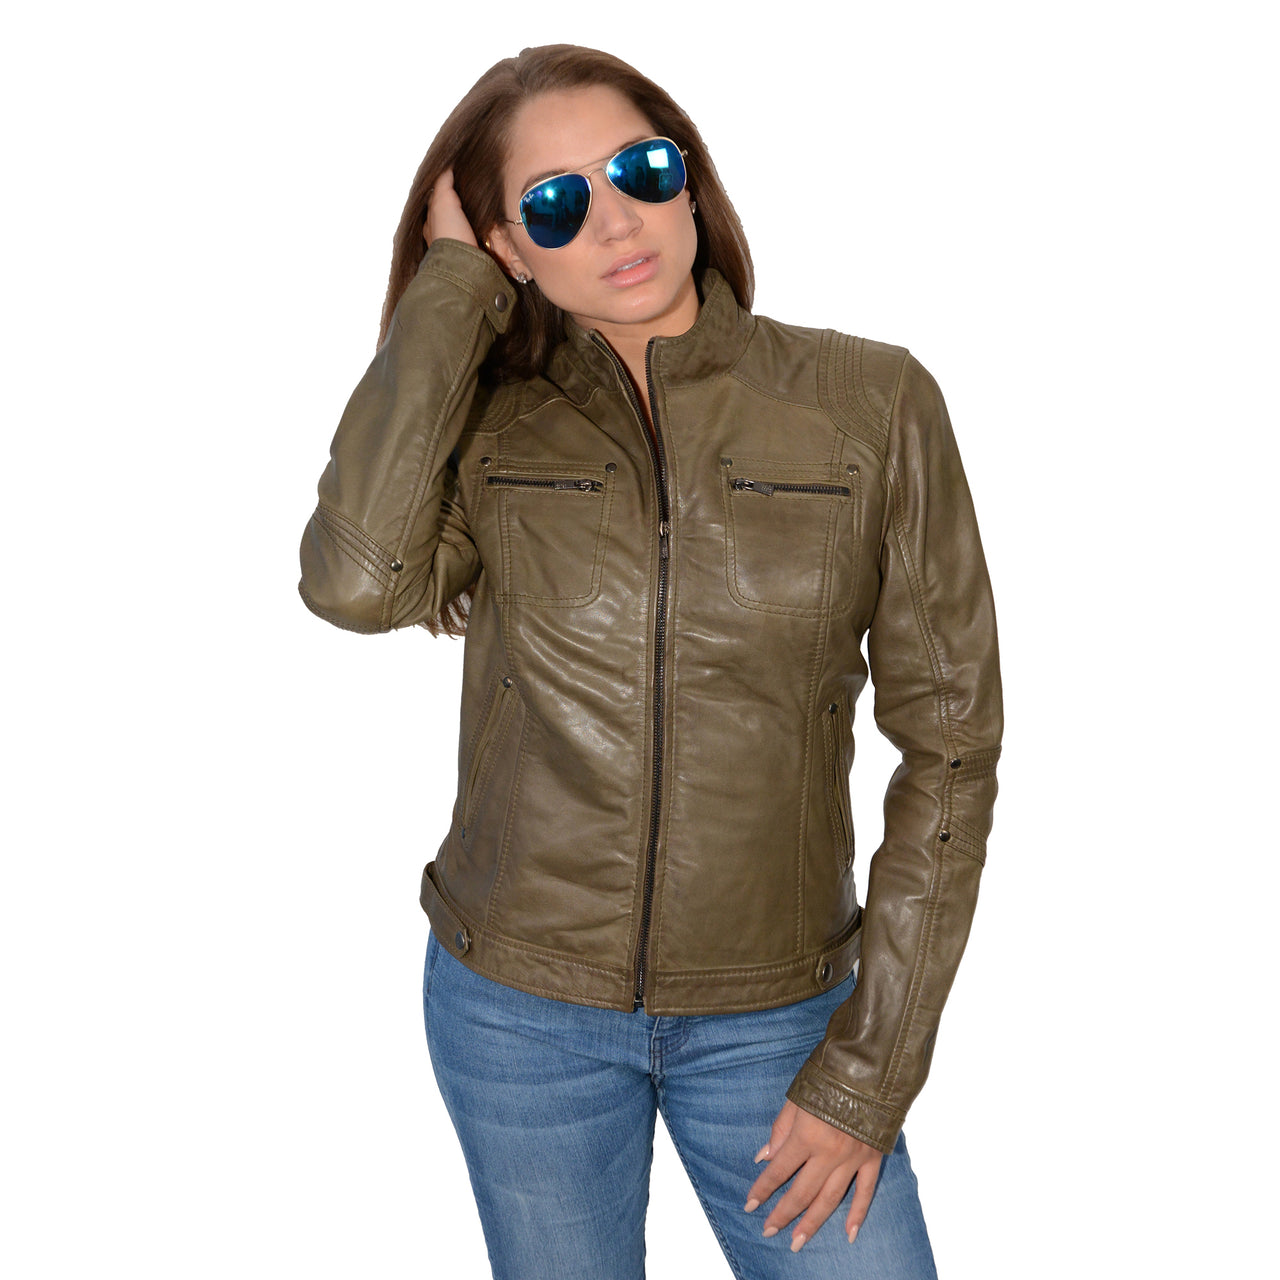 Ladies stand up collar racer jacket with rivet details - HighwayLeather